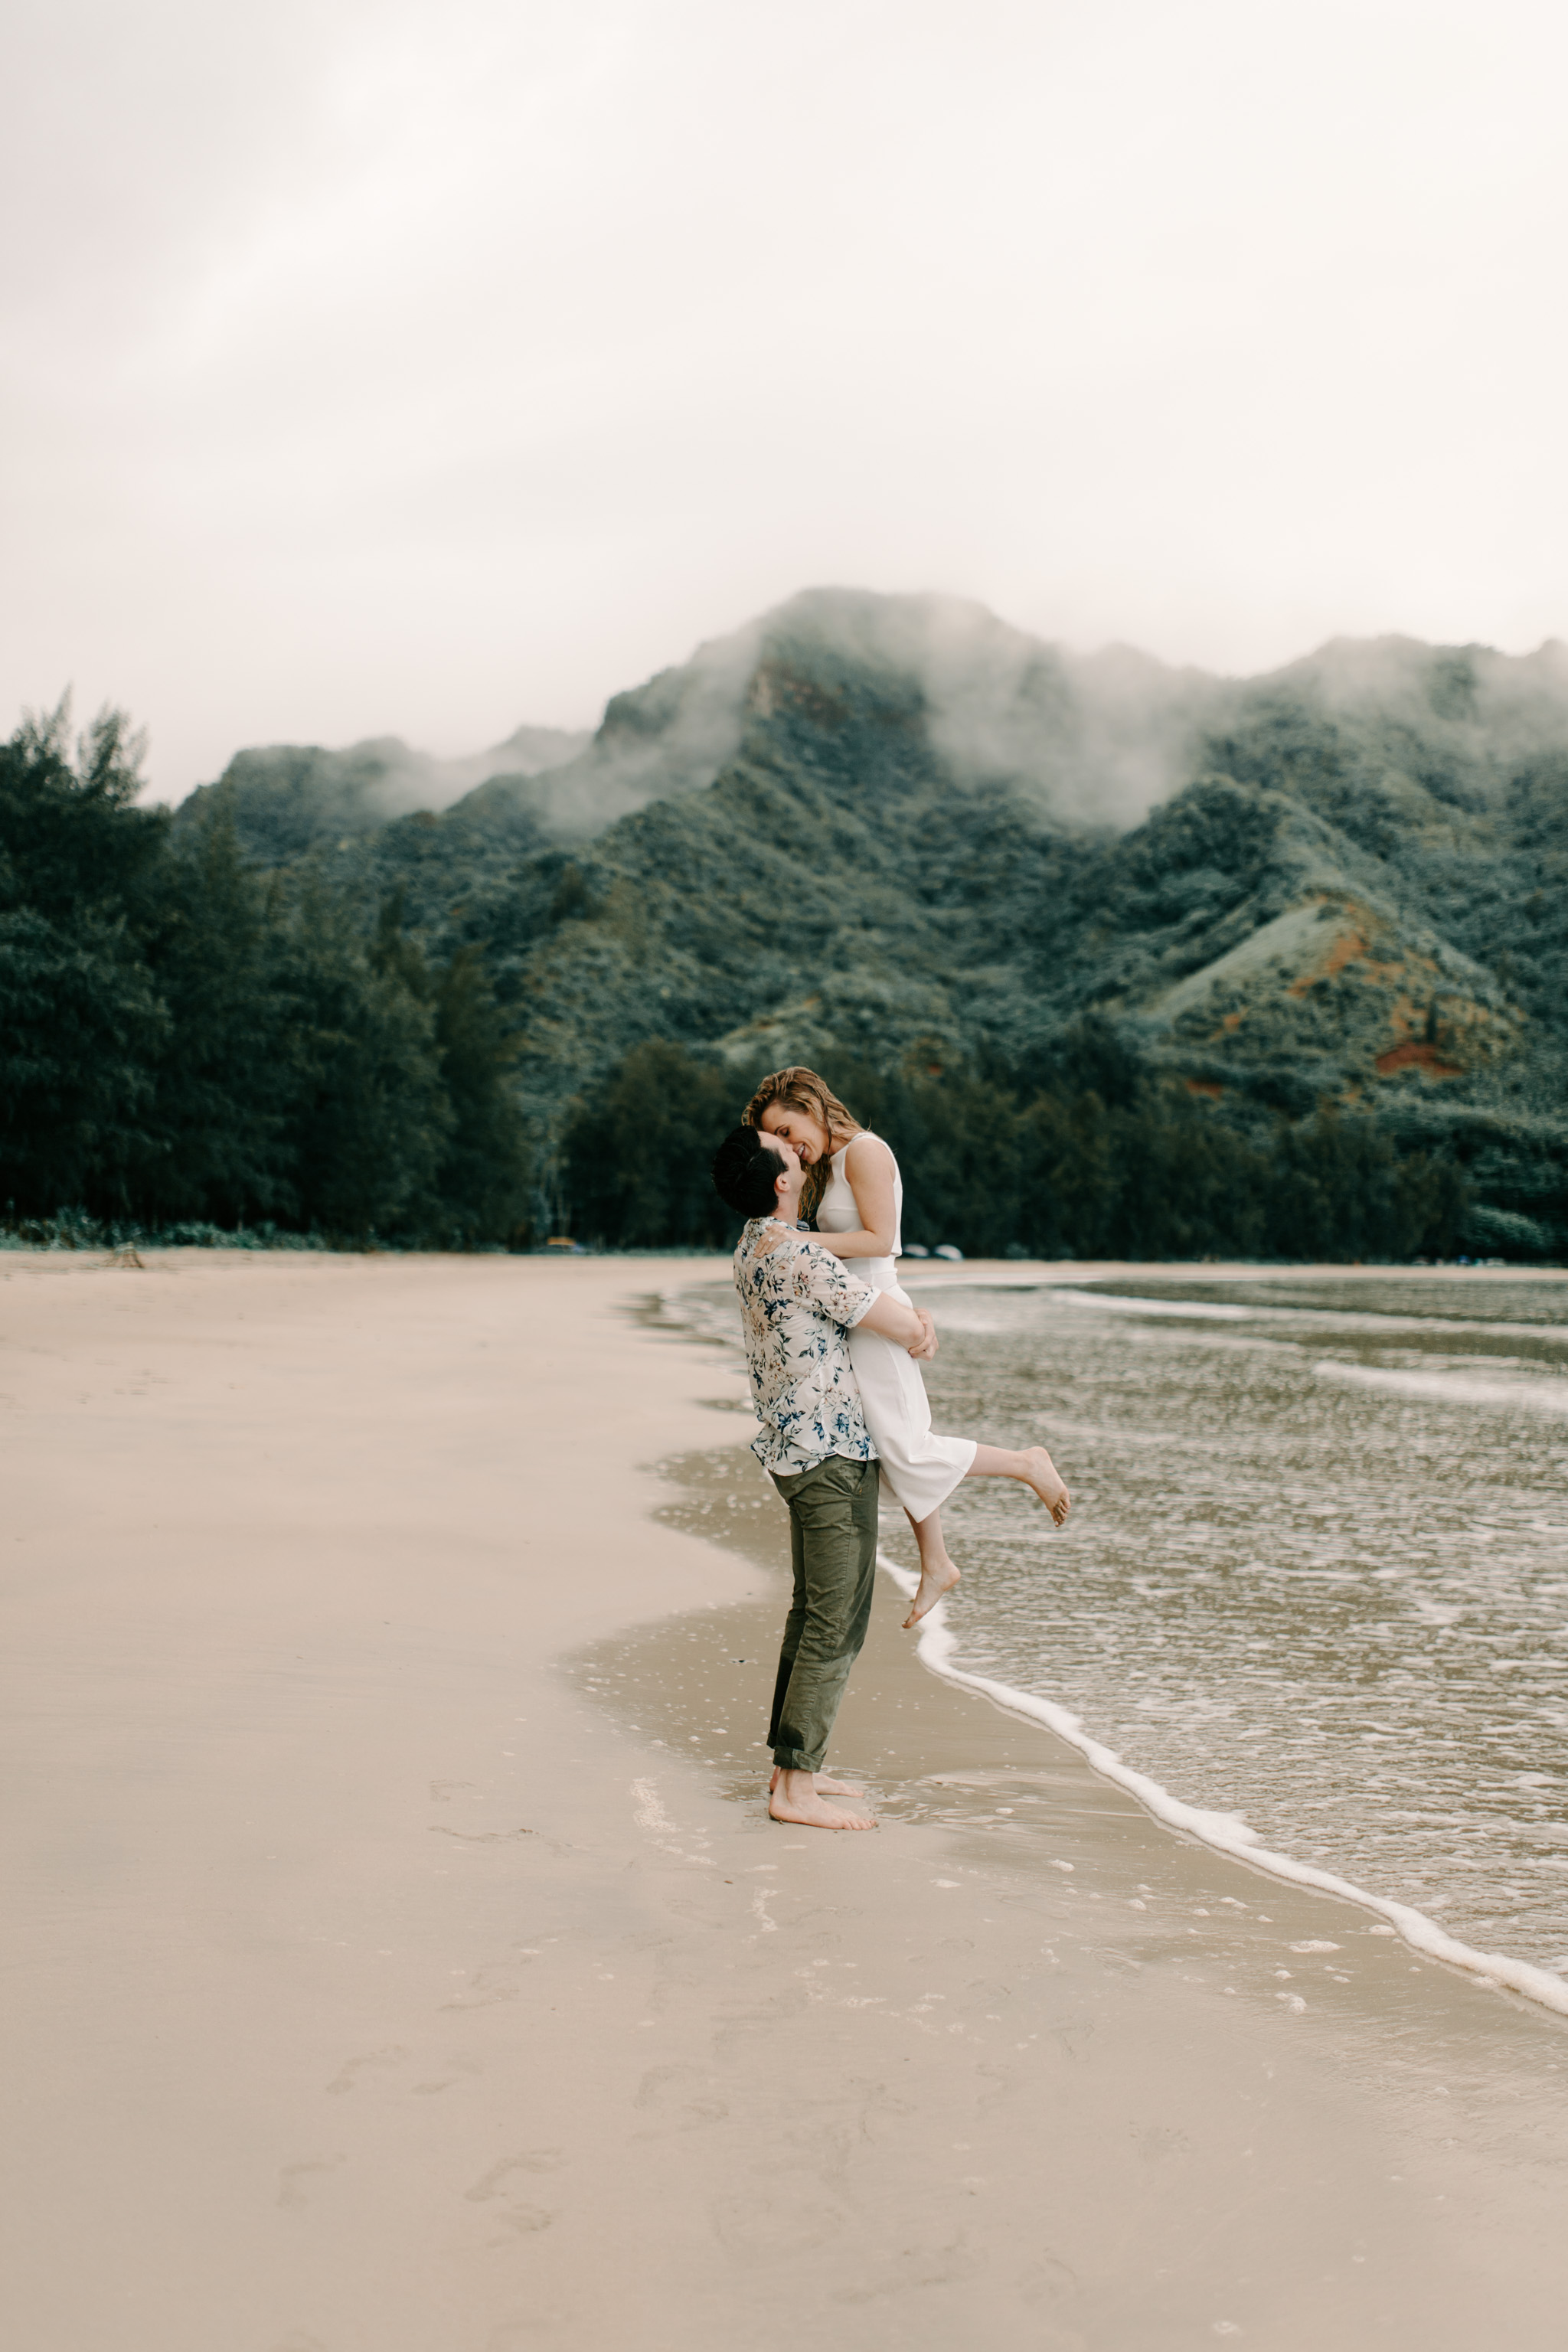 Romantic Oahu Beach Engagement Photos by Hawaii Wedding Photographer Desiree Leilani